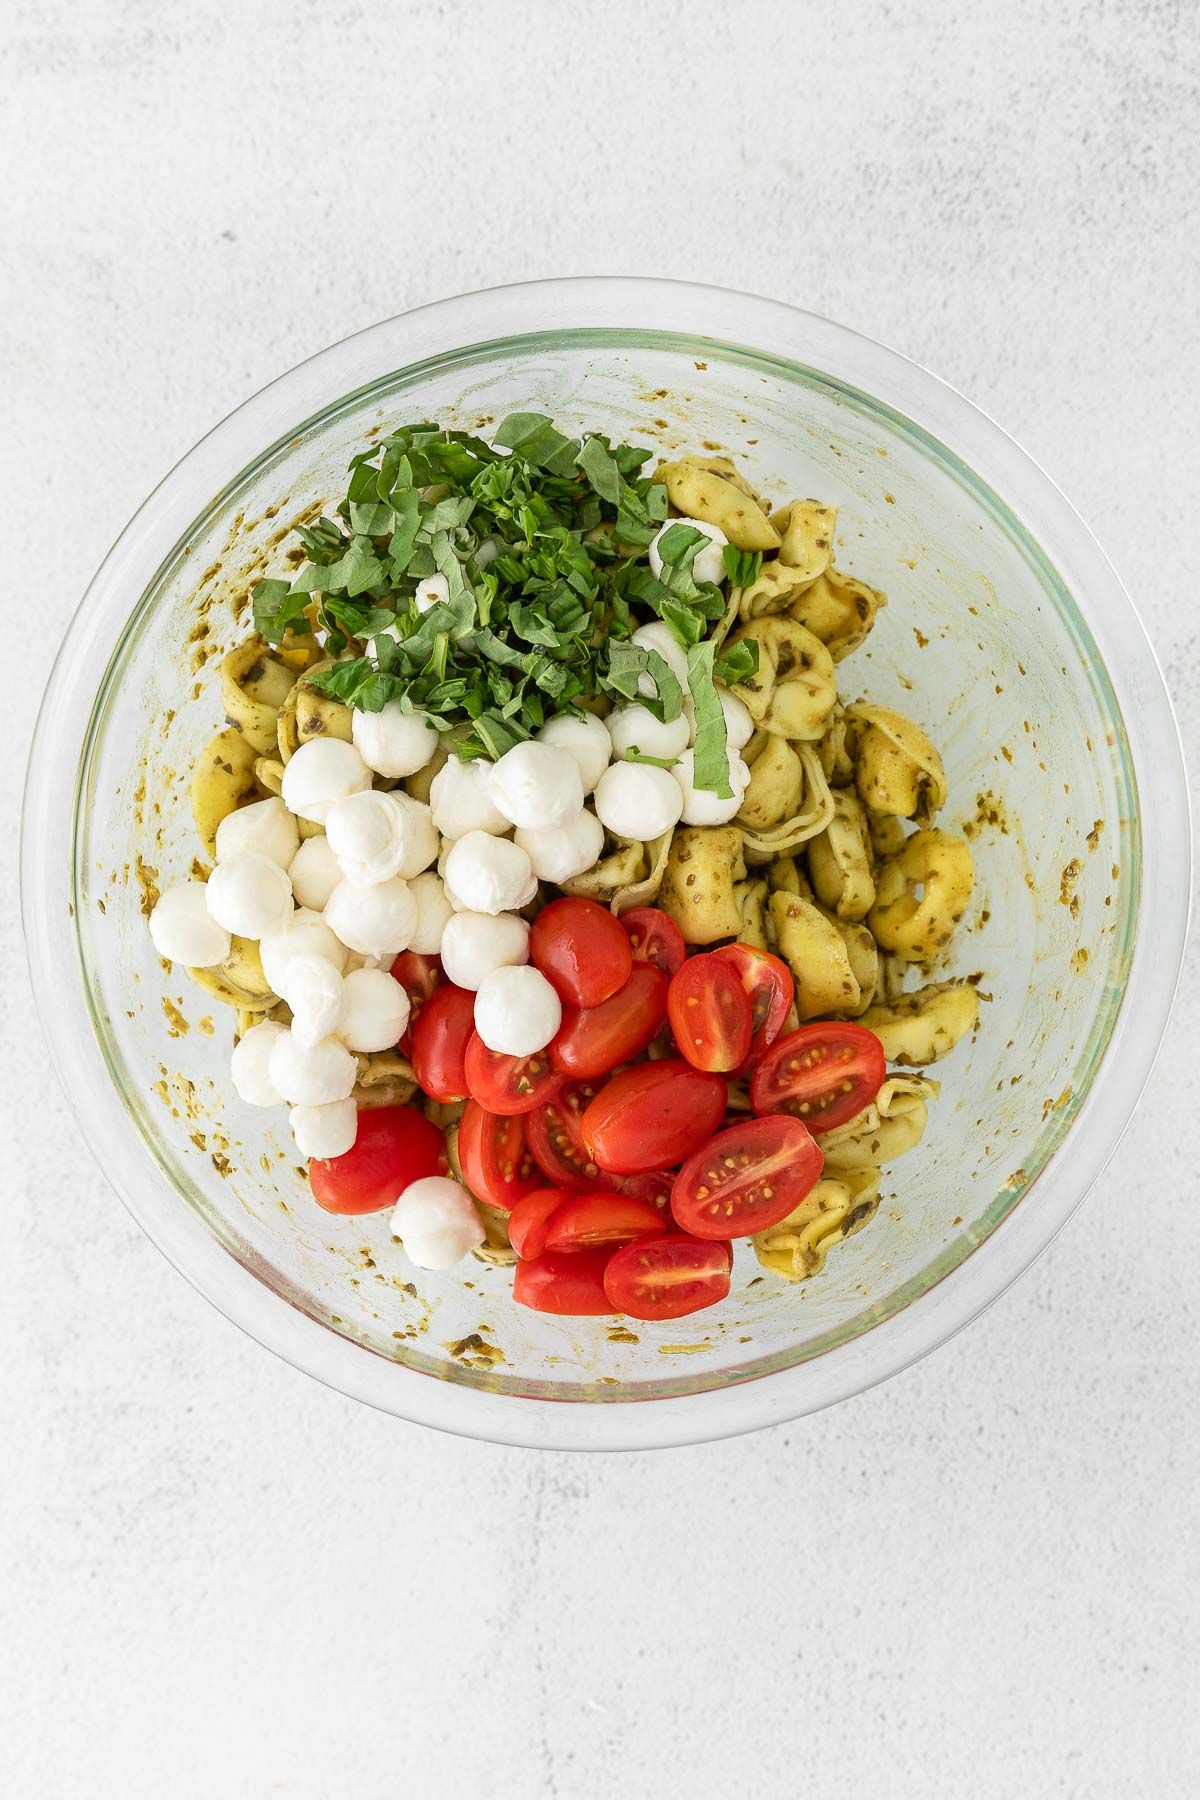 tortellini in a glass bowl with tomatoes, mozzarella cheese and fresh basil